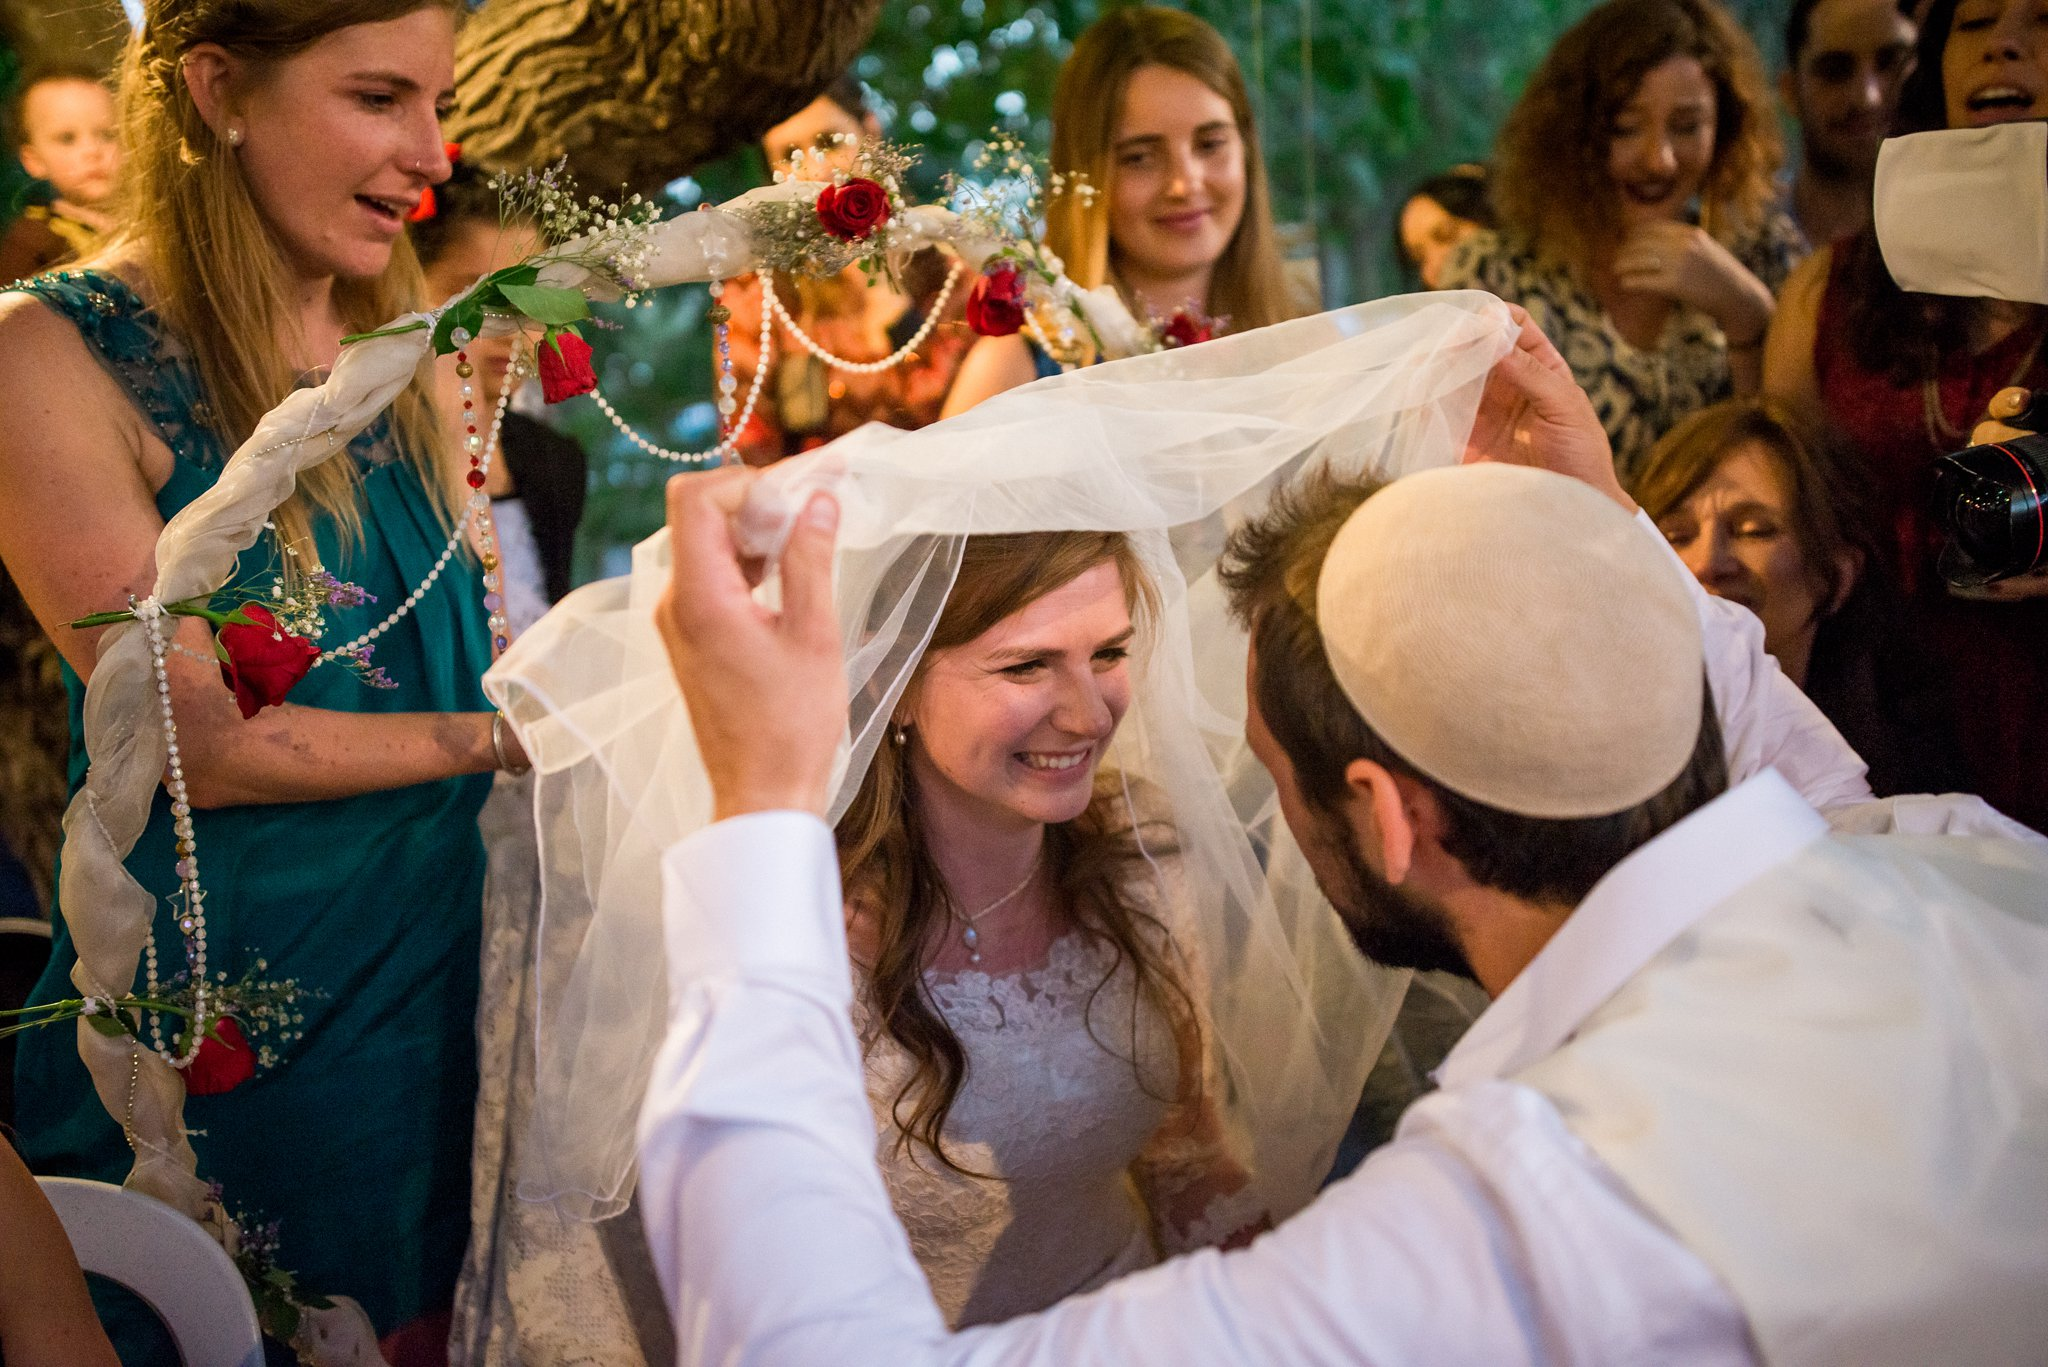 jewish-wedding-binyamina-israel-kate-giryes-photography-133_WEB.jpg